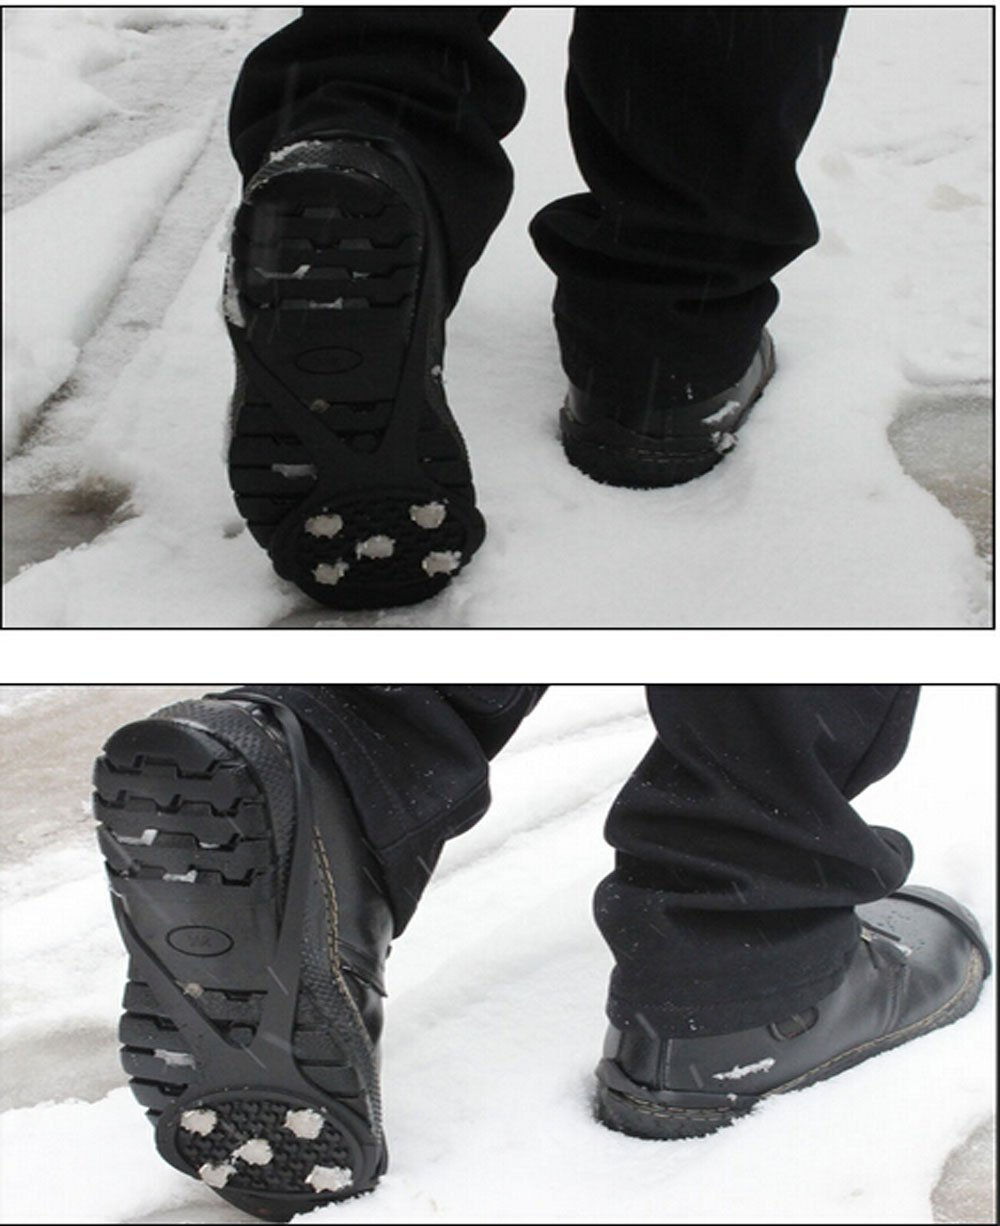 Kids Size 1 Pair Crampons//Traction Cleats//Spike Winter Walking Safety Shoe Grips on Ice//Snow Children Girls Boys